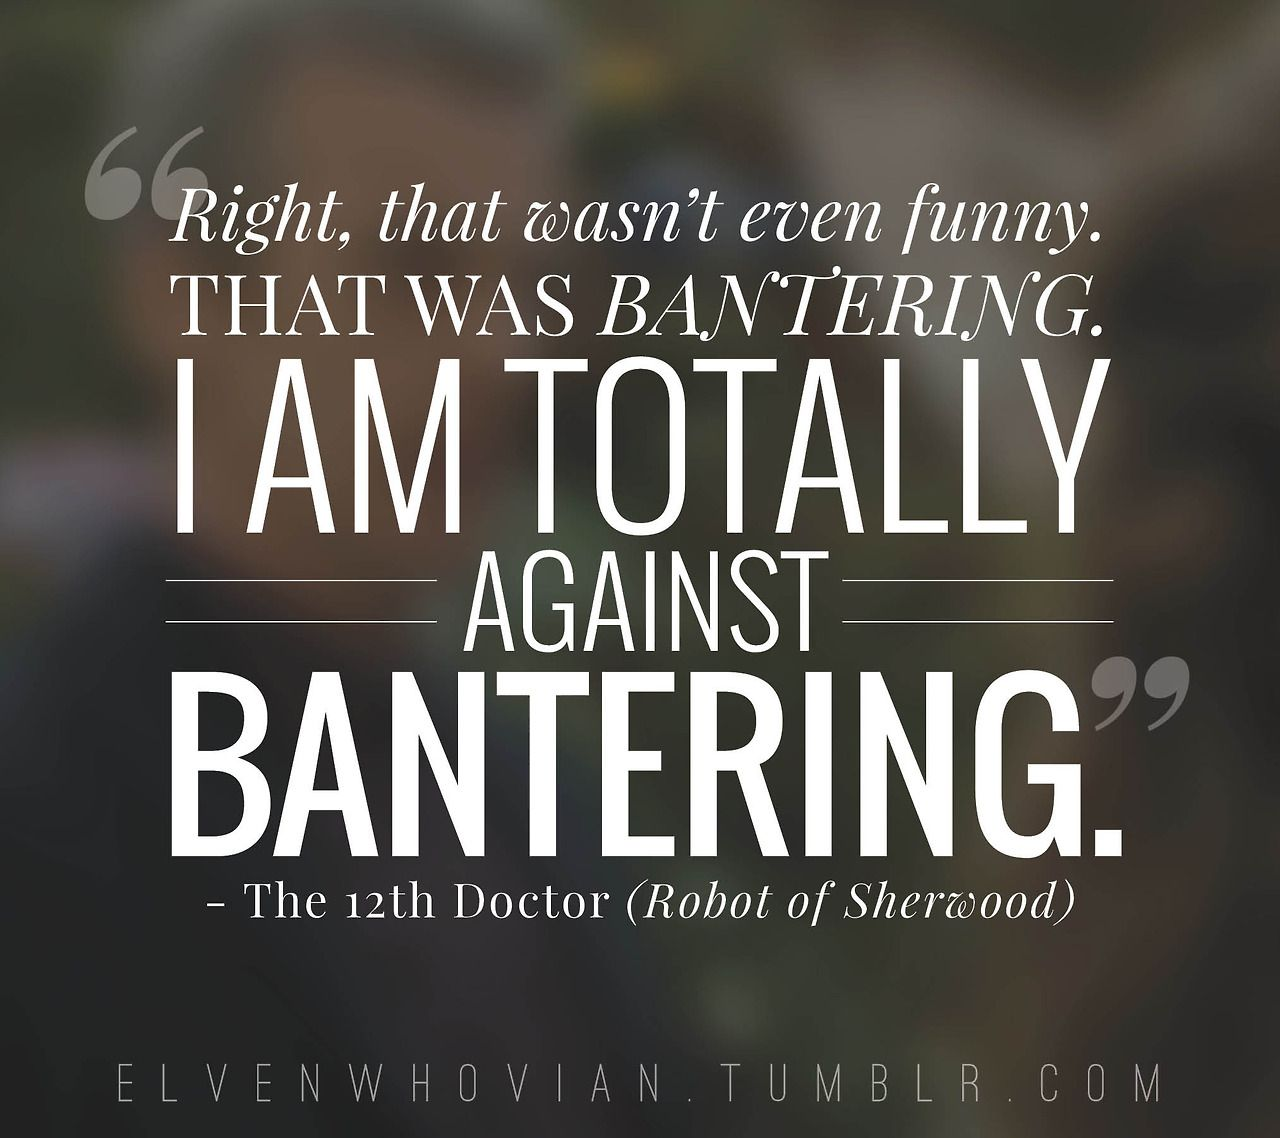 Highlander Quotes Twelfth Doctor Quotes Robot Of Sherwood Doctor Who  Doctor Who